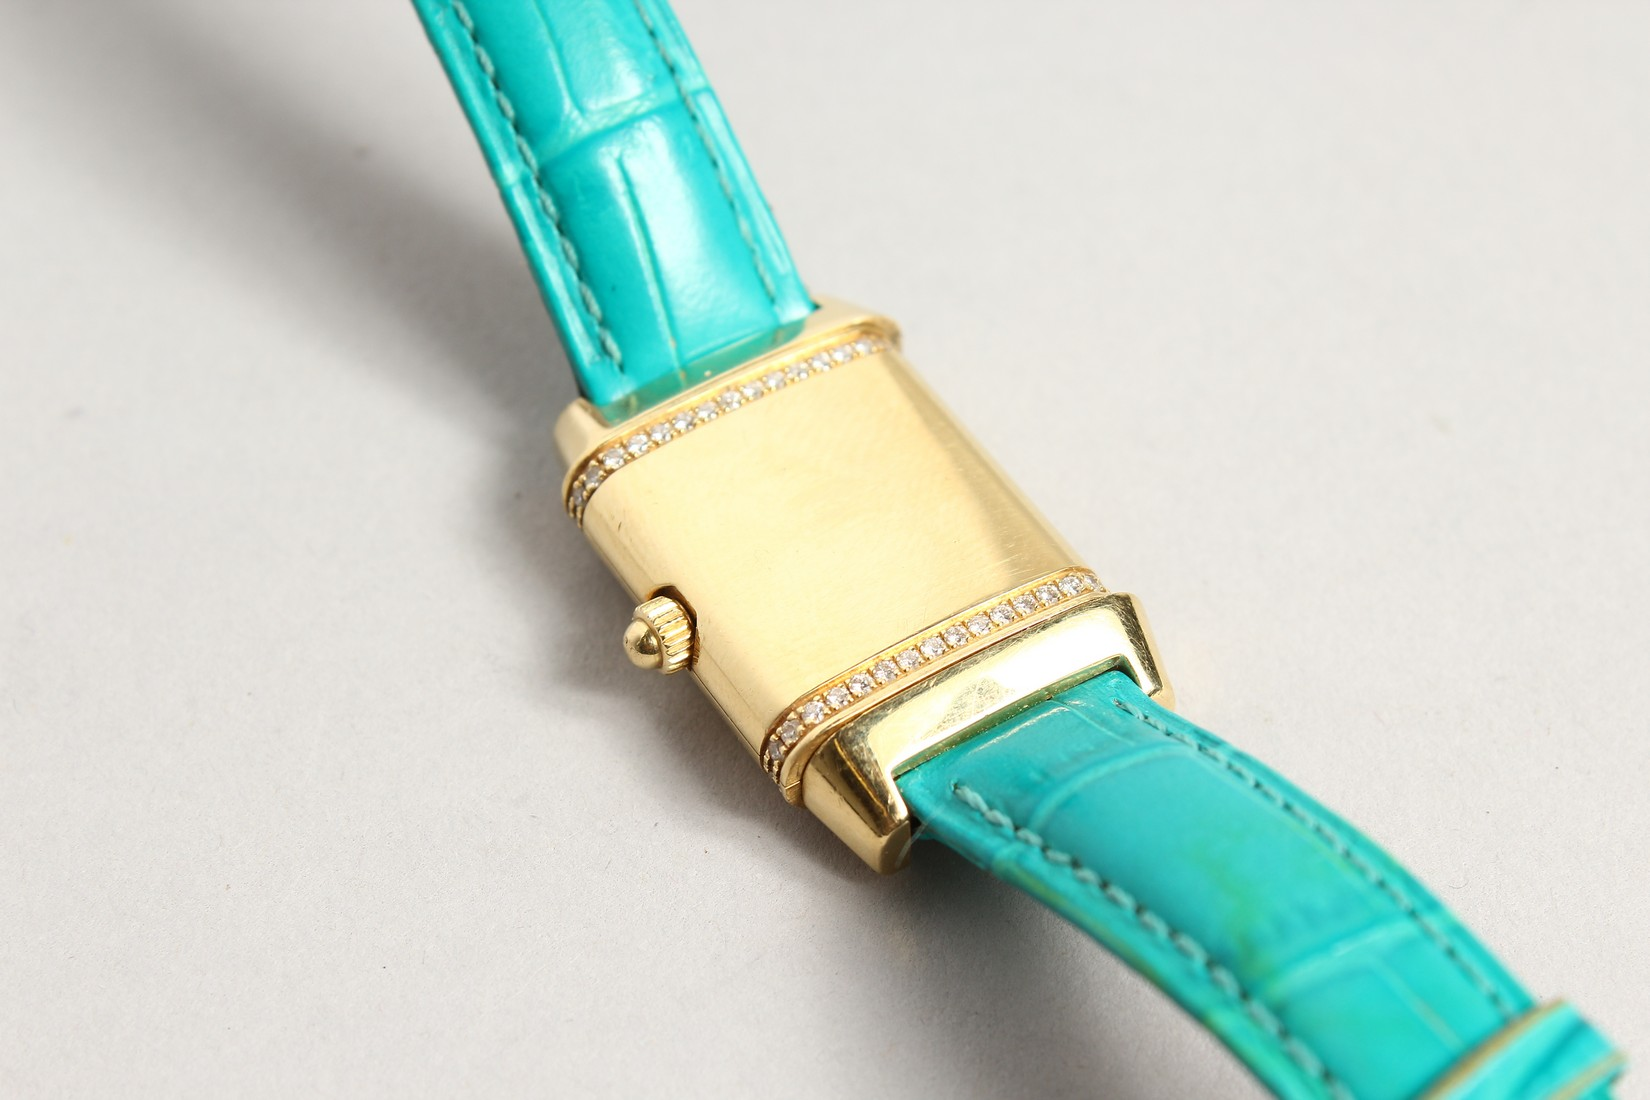 A VERY GOOD 18CT. GOLD AND DIAMOND JAGEUR LE COUTRE REVERSE WRISTWATCH, with a leather strap. - Image 6 of 8